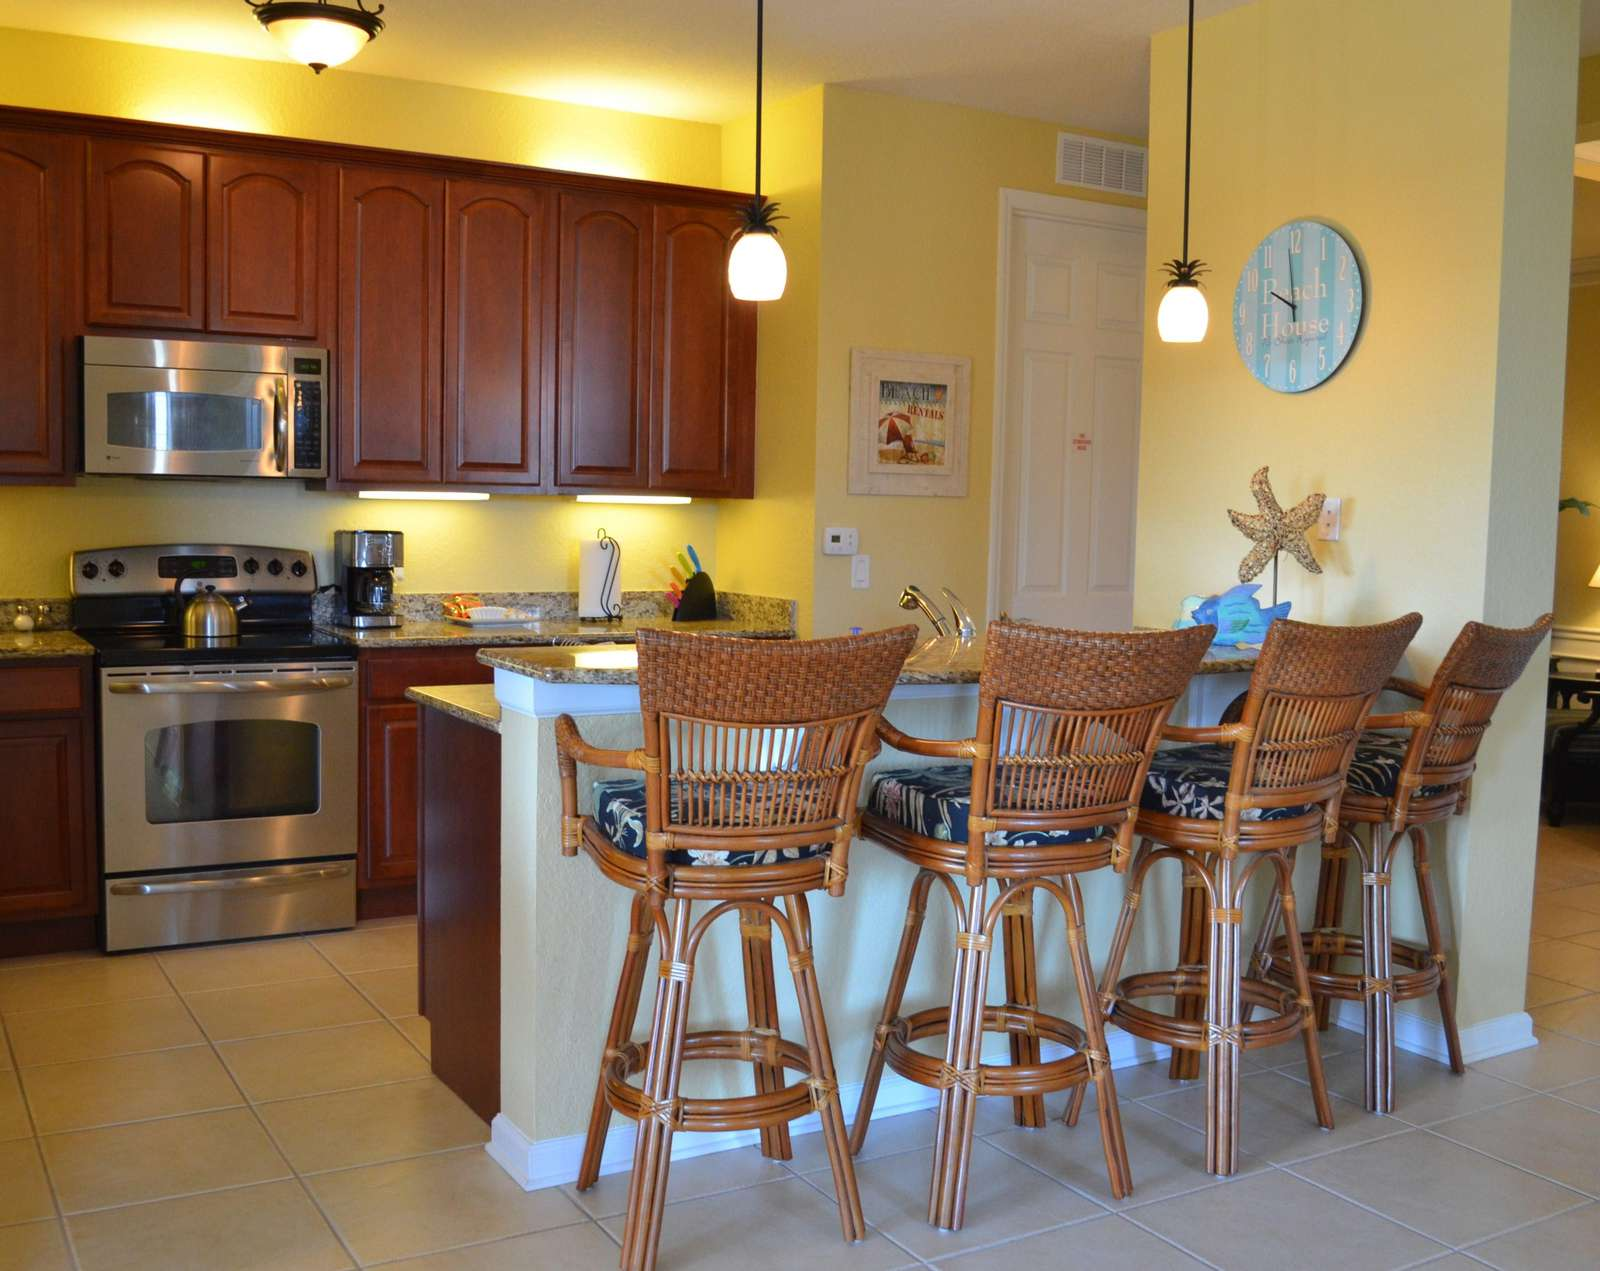 Kitchen counter seating